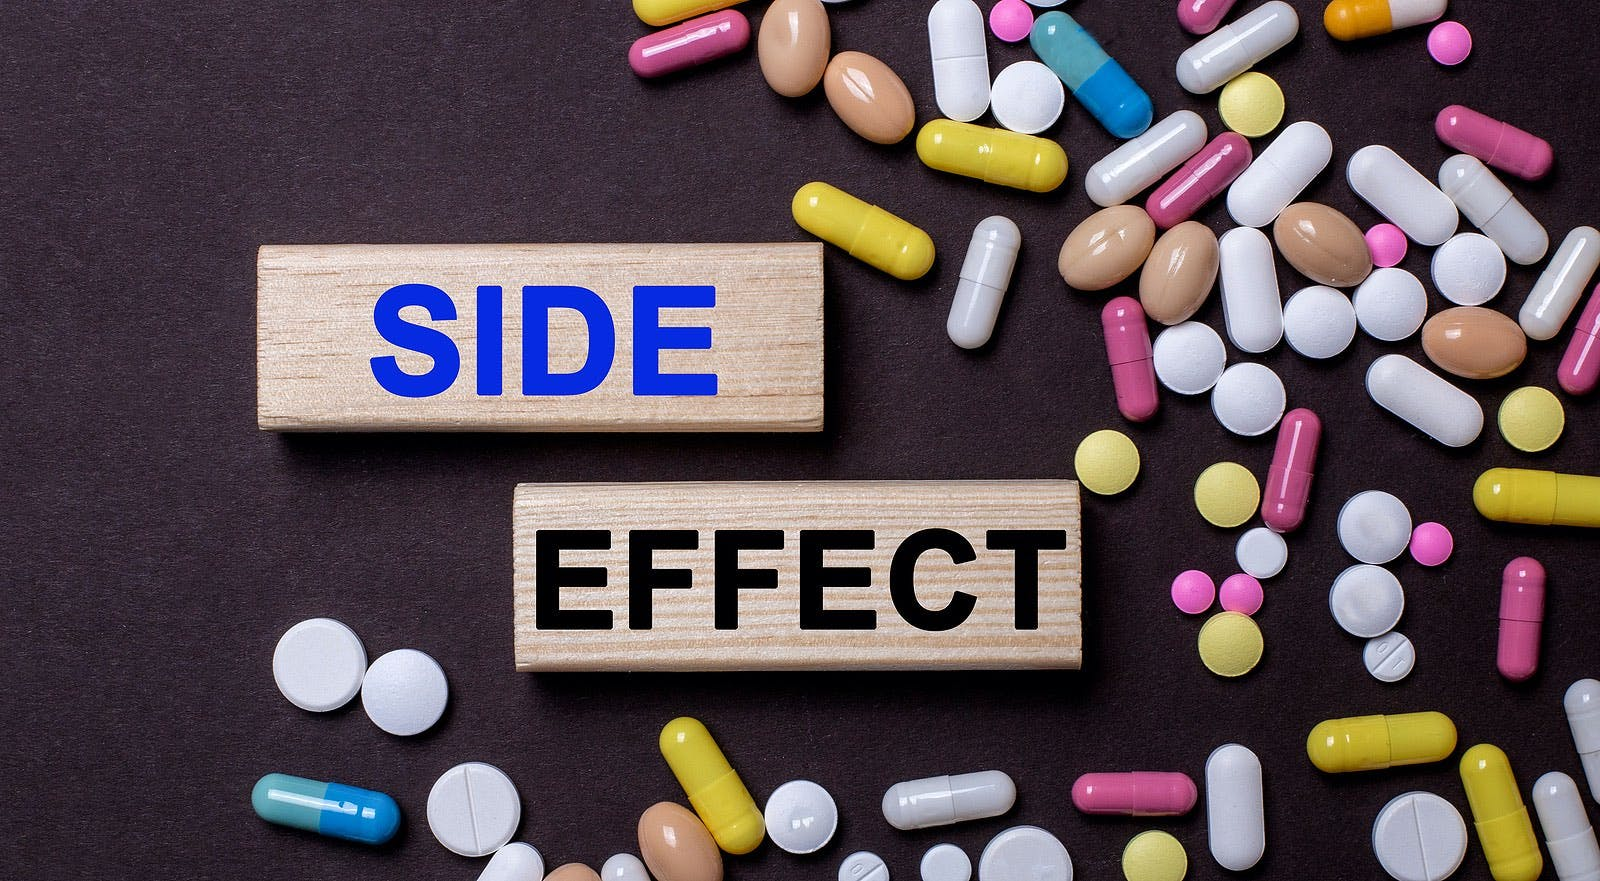 Side effect – words on wooden printed blocks between multi-colored tablets on a dark background